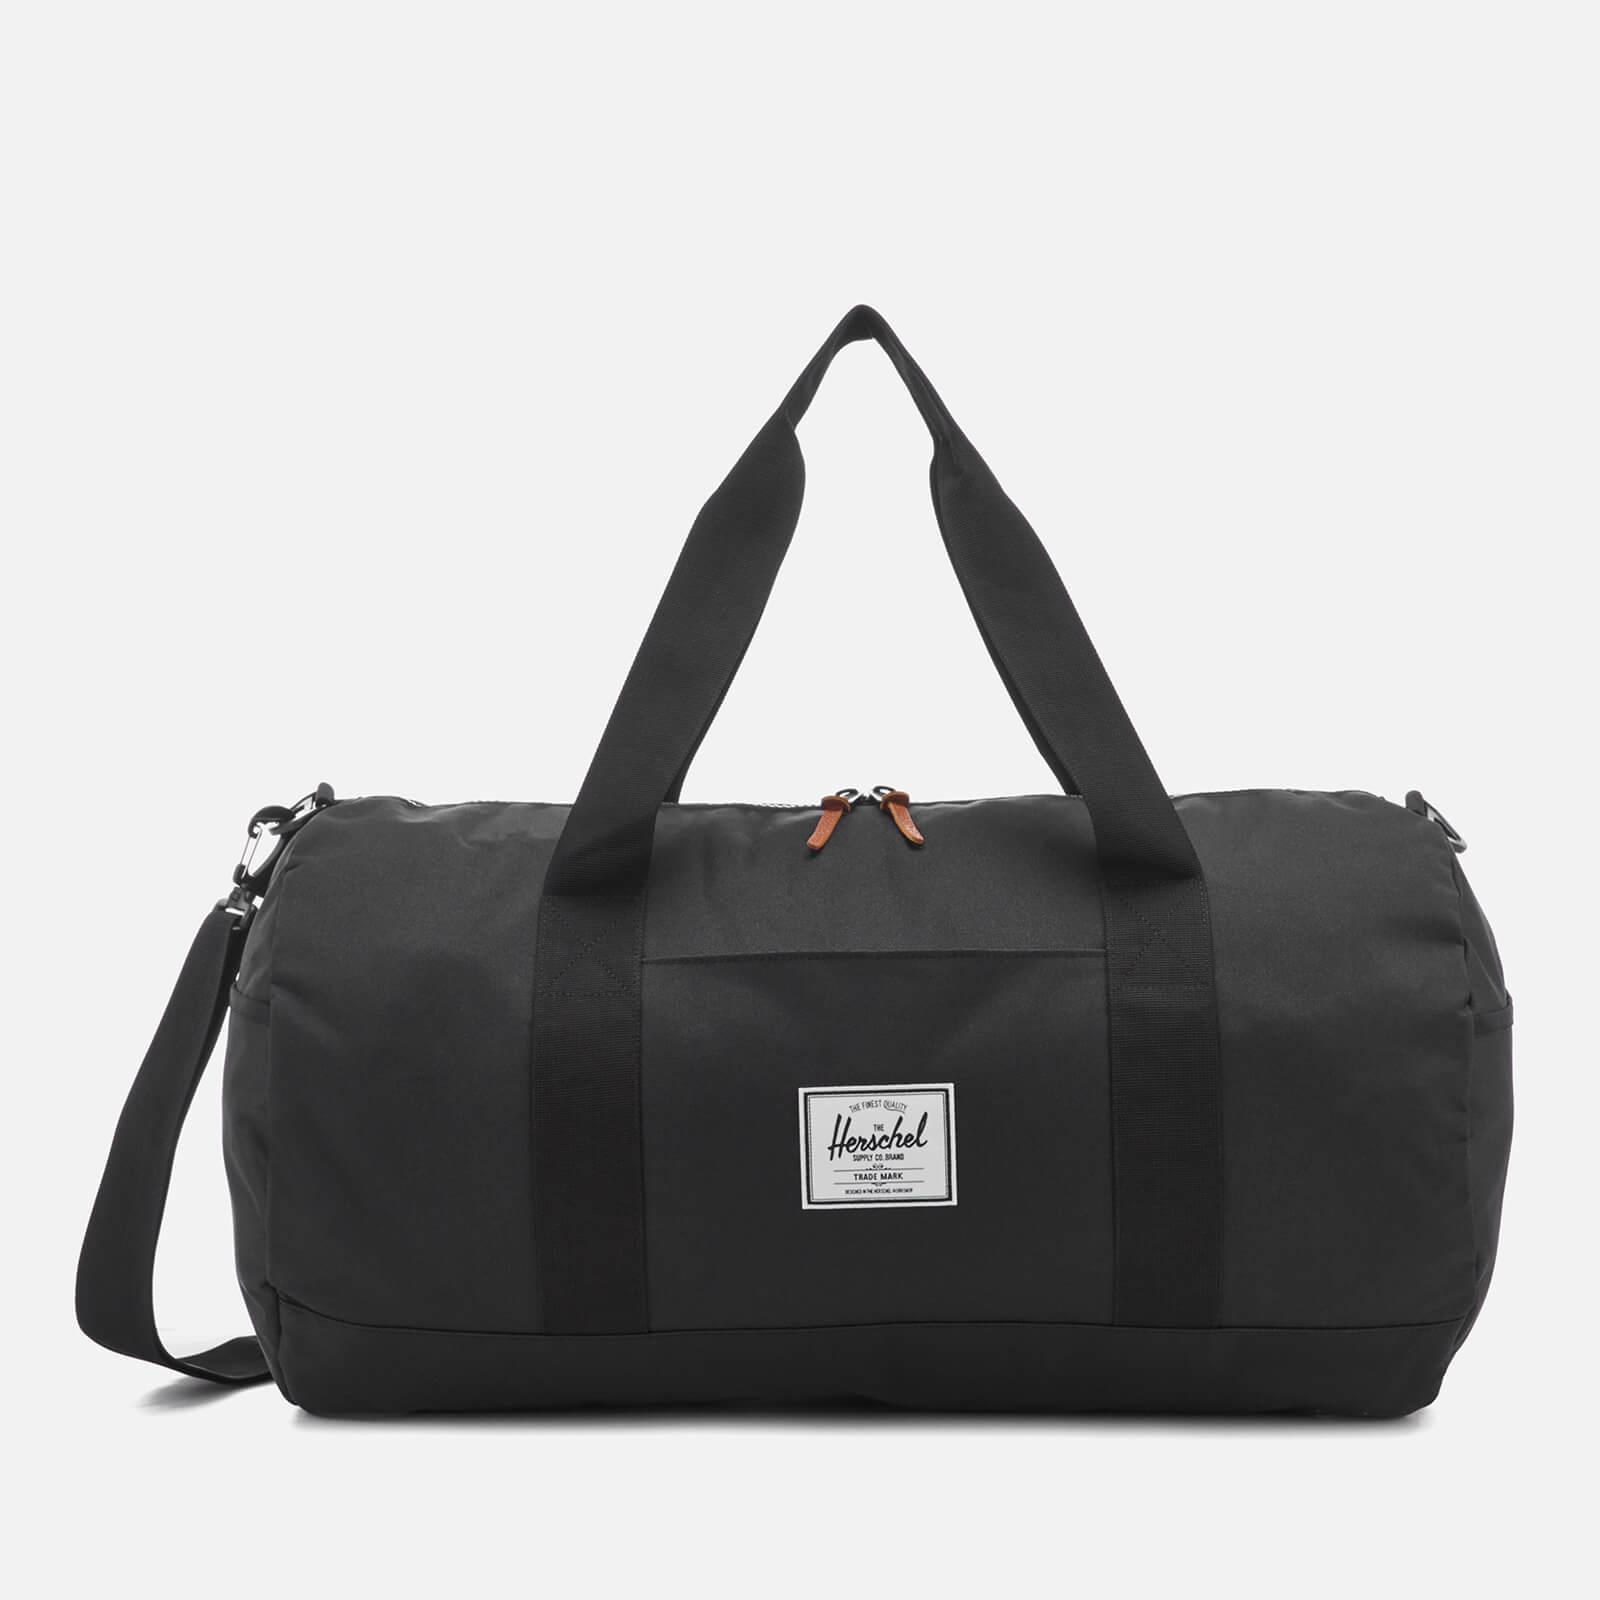 Gym Bag Herschel: Herschel Supply Co. Sutton Duffle Bag In Black For Men